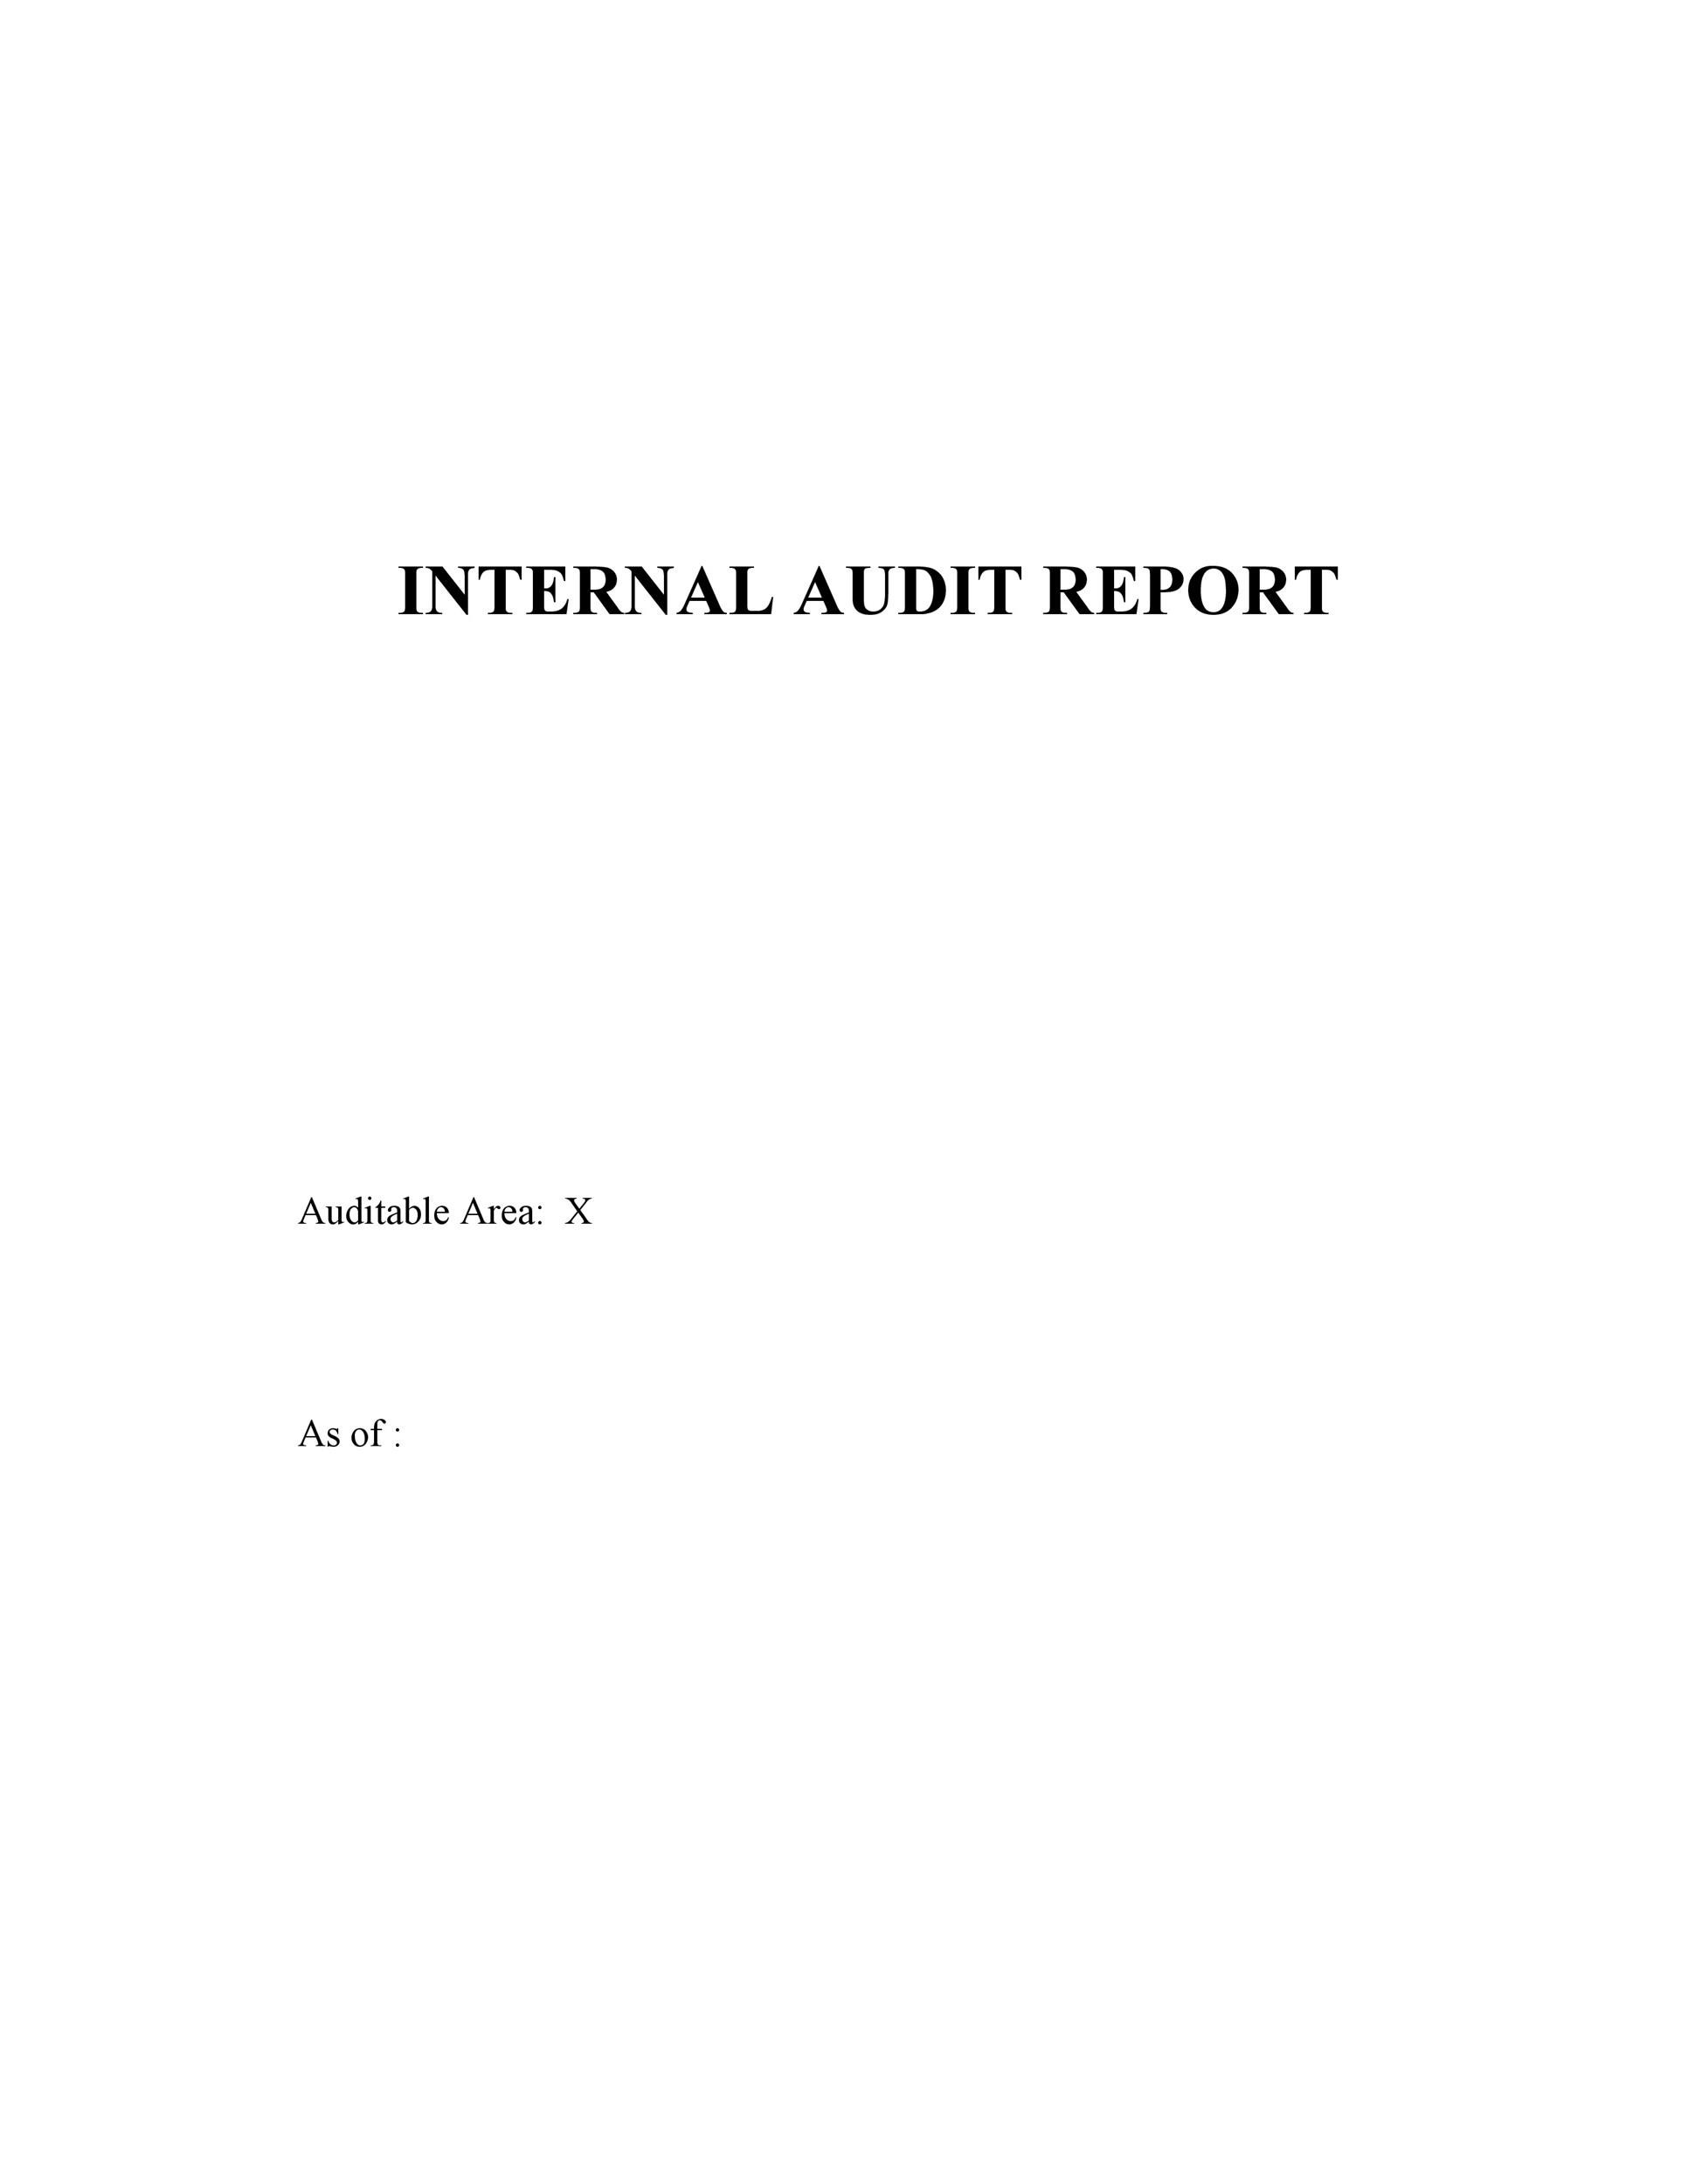 Free audit report template 33